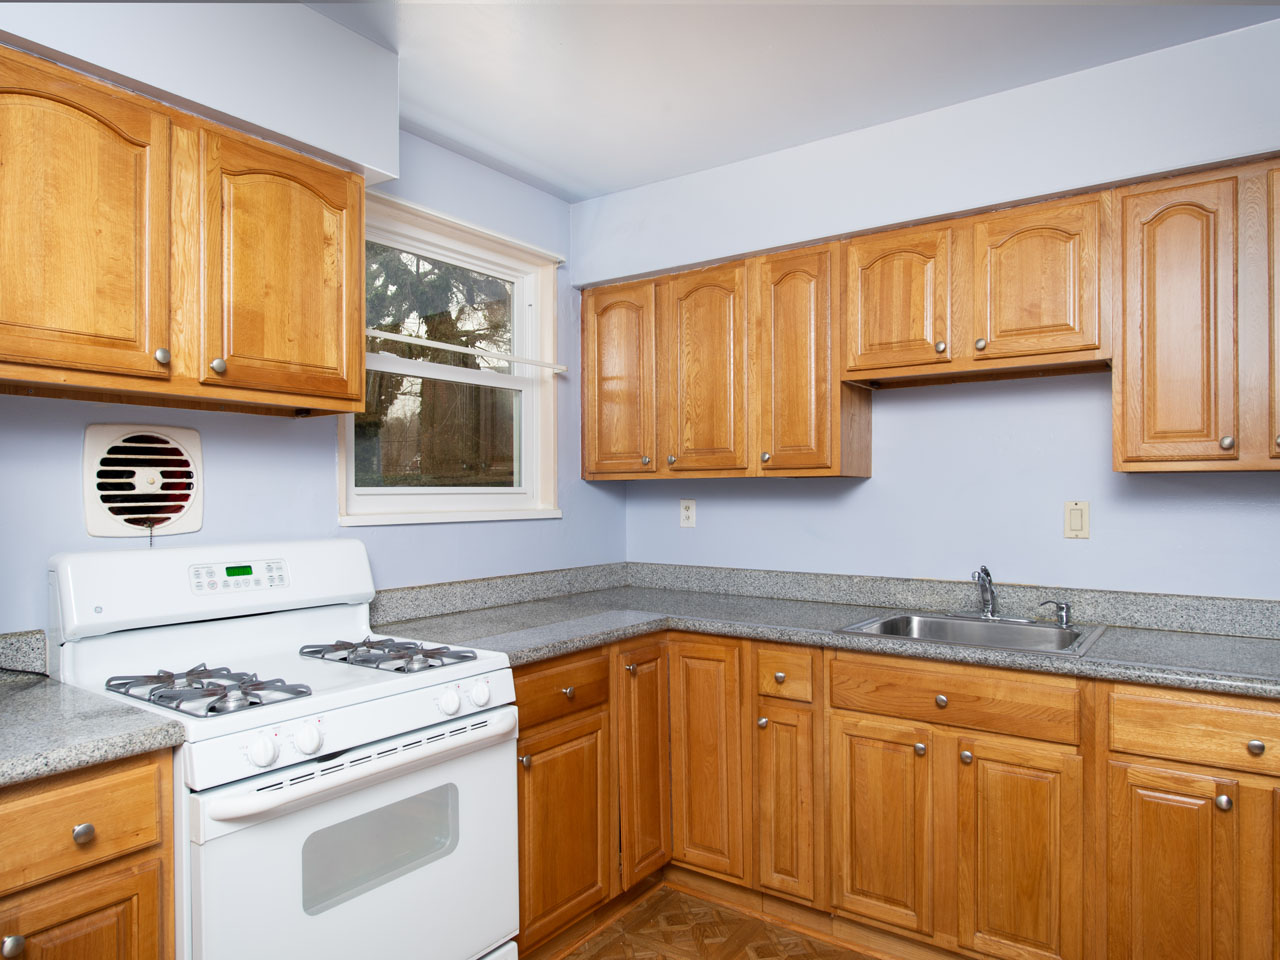 3442_kitchen-4  |   | Alexandria Delaware Real Estate For Sale | MLS# Vaax227446  - Best of Northern Virginia